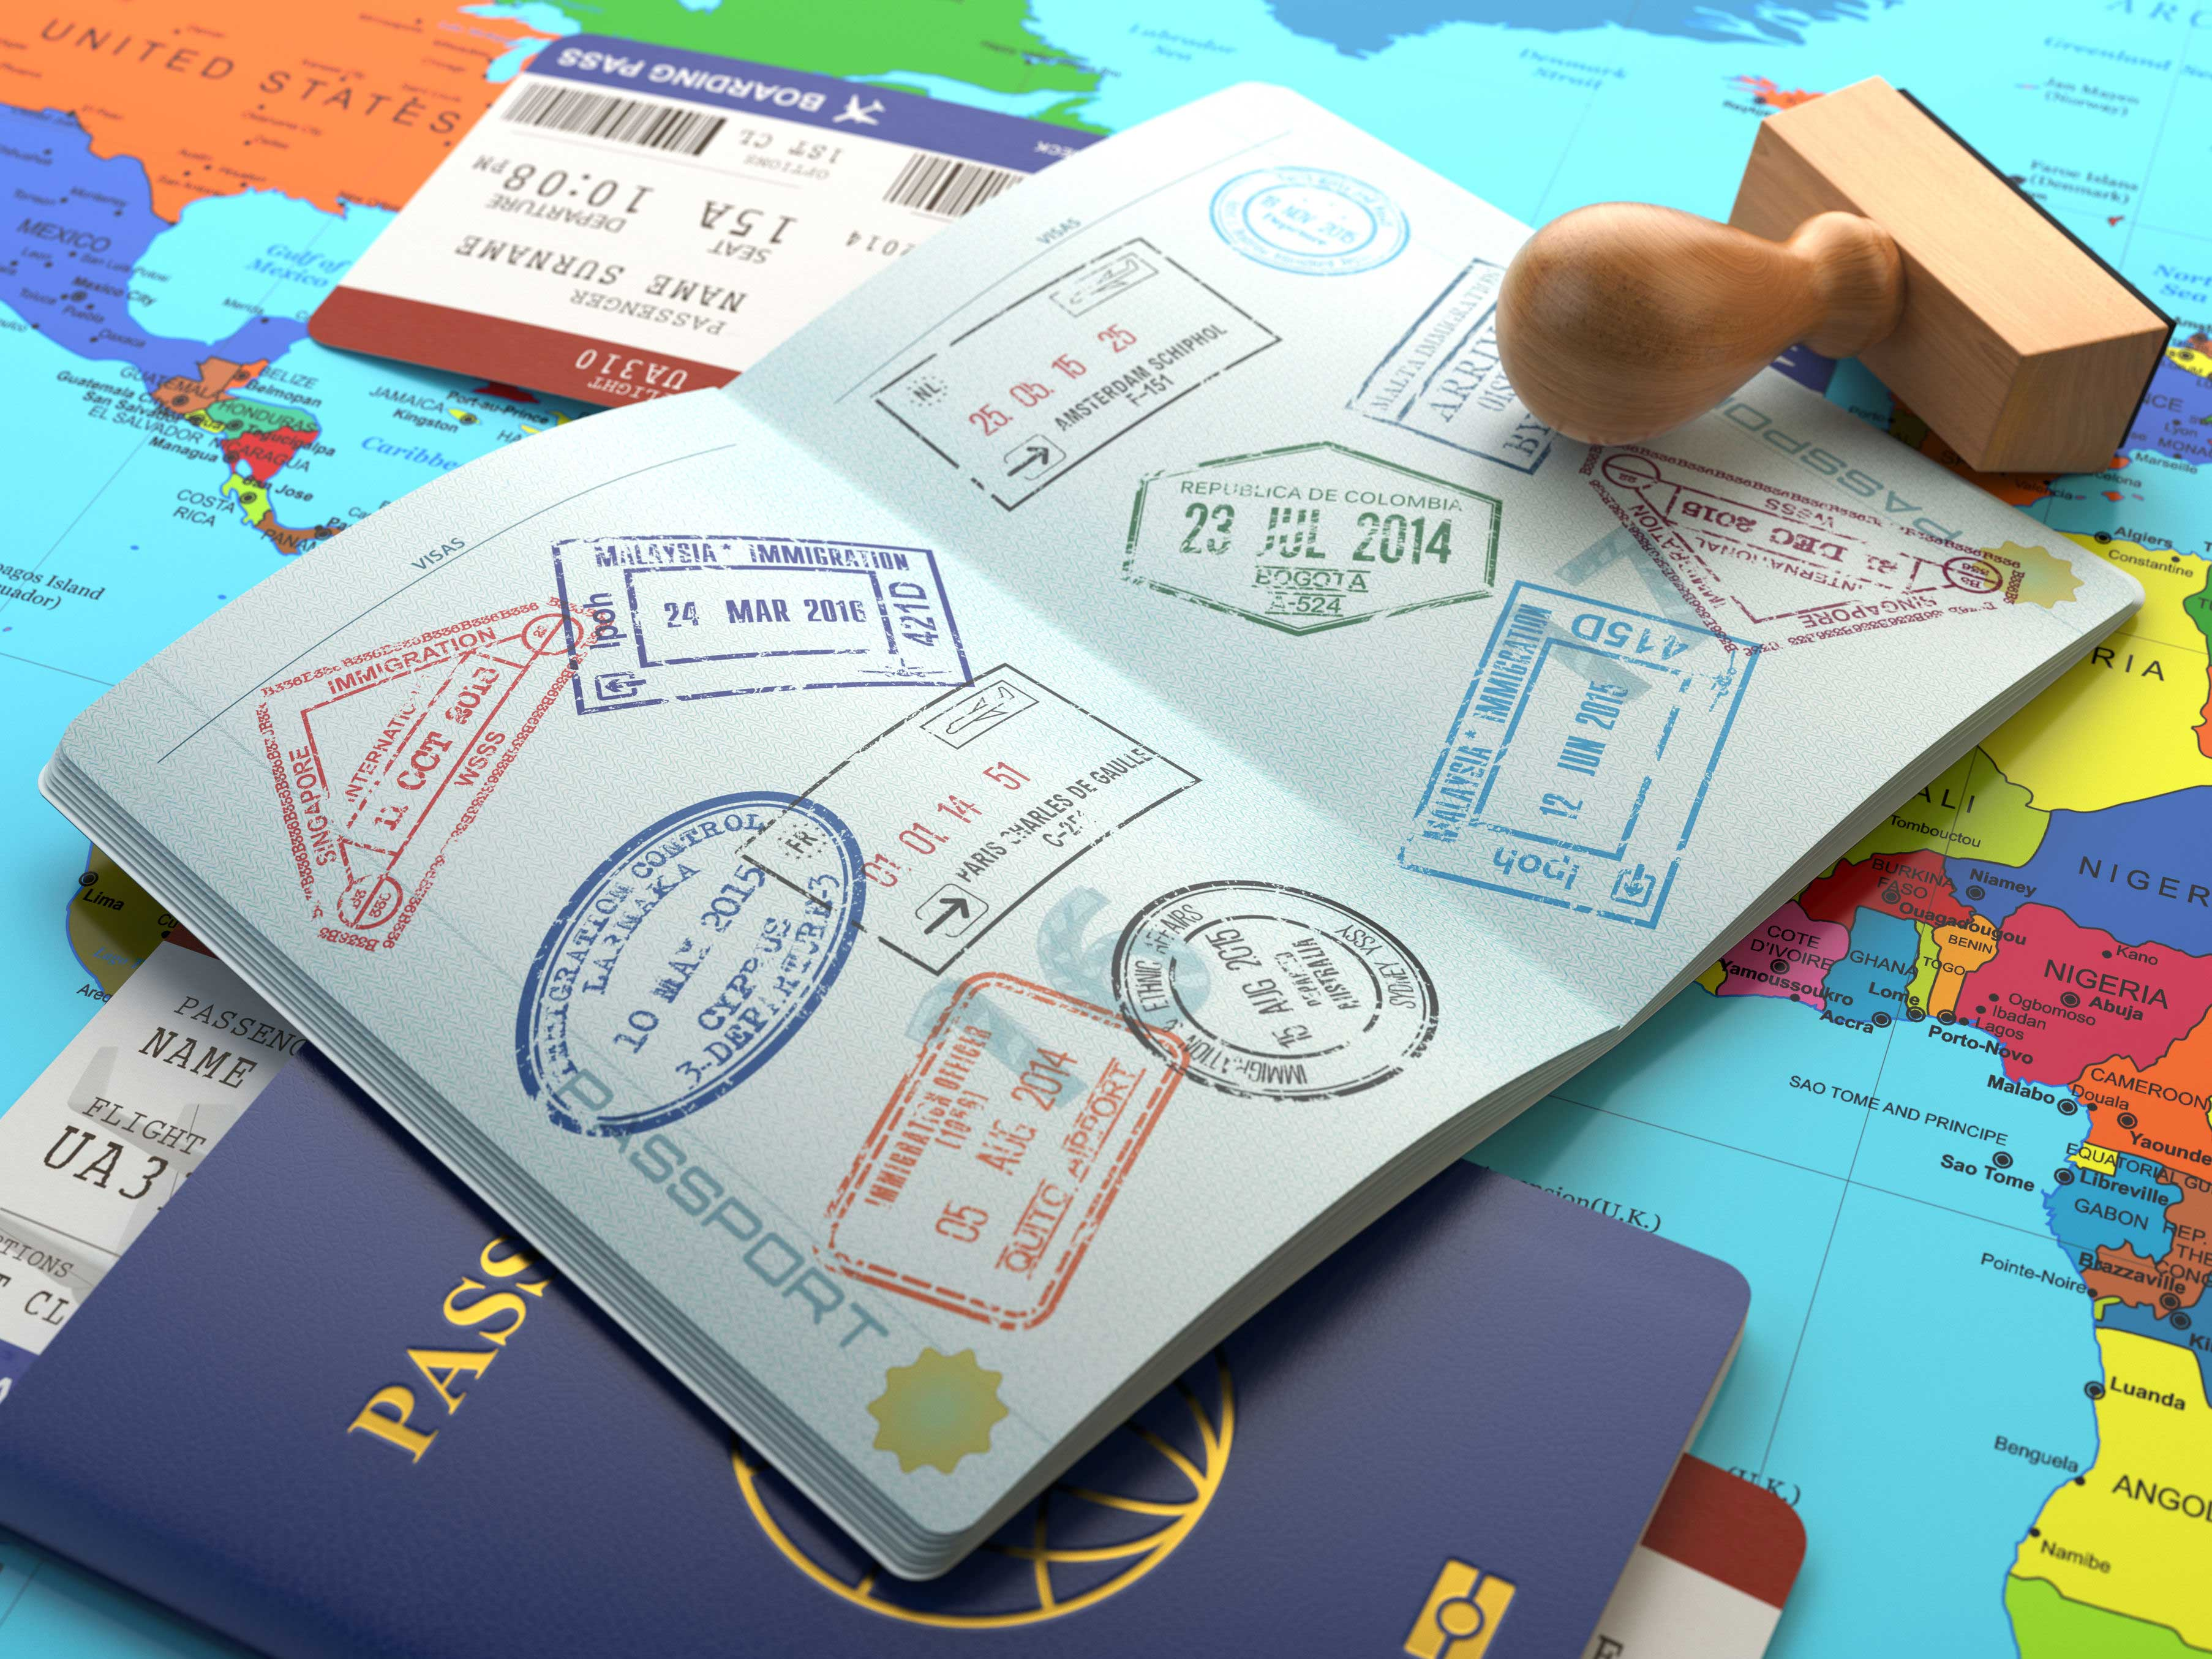 A stock image showing a passport with several stamps